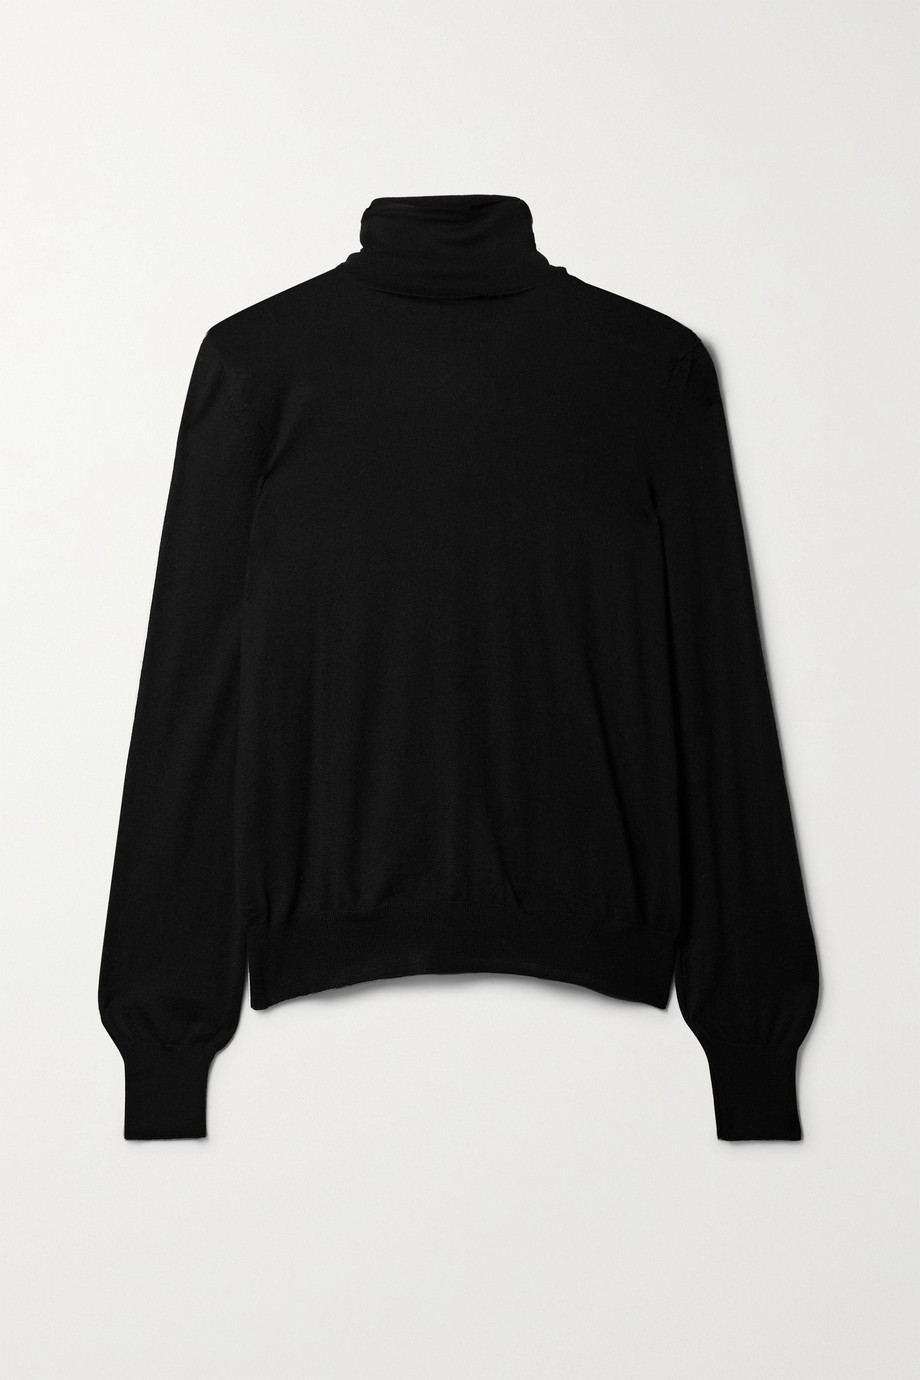 The Row Lambeth cashmere turtleneck sweater